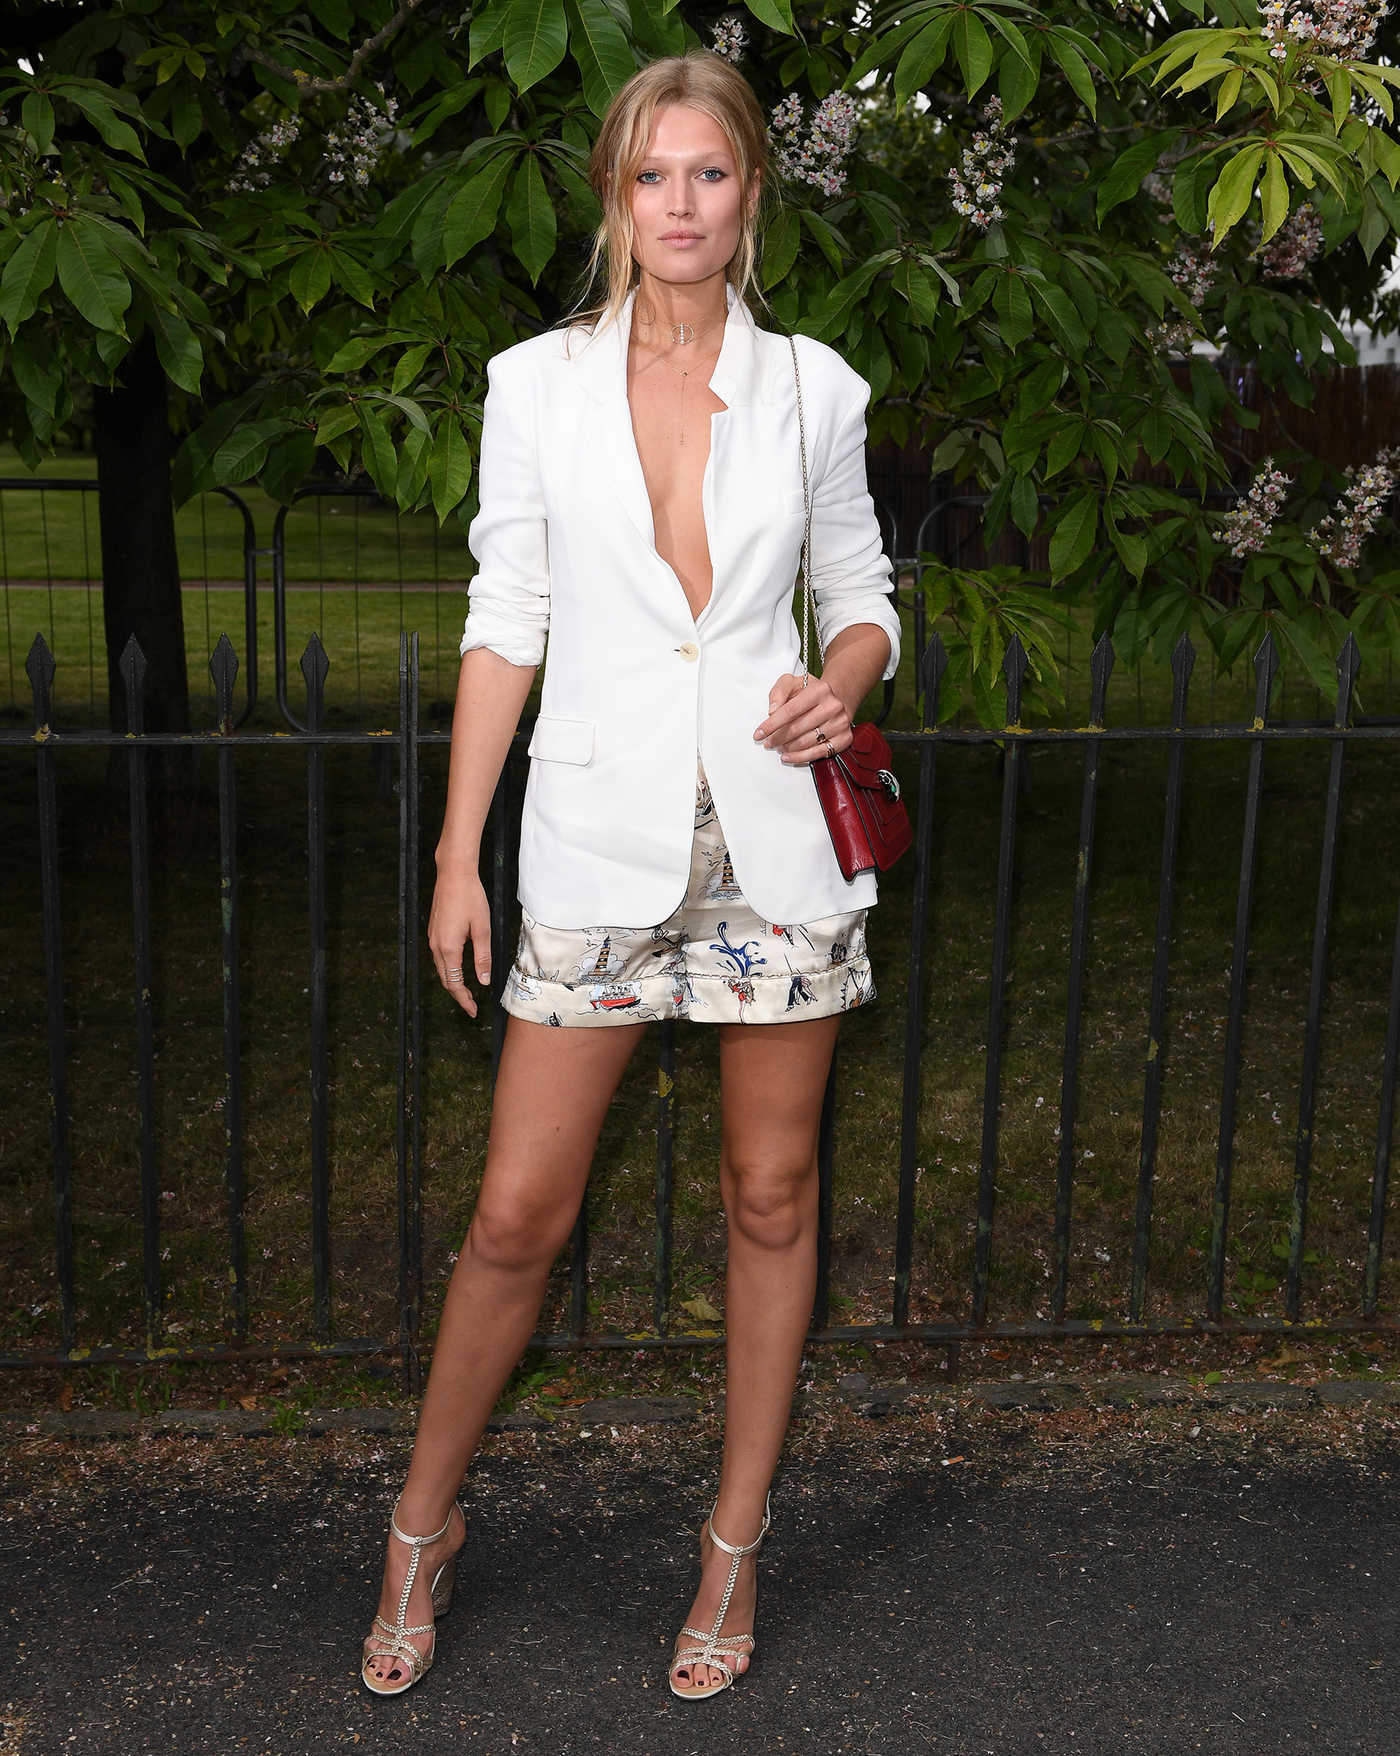 Toni Garrn at the Serpentine Summer Party in London 07/07/2016